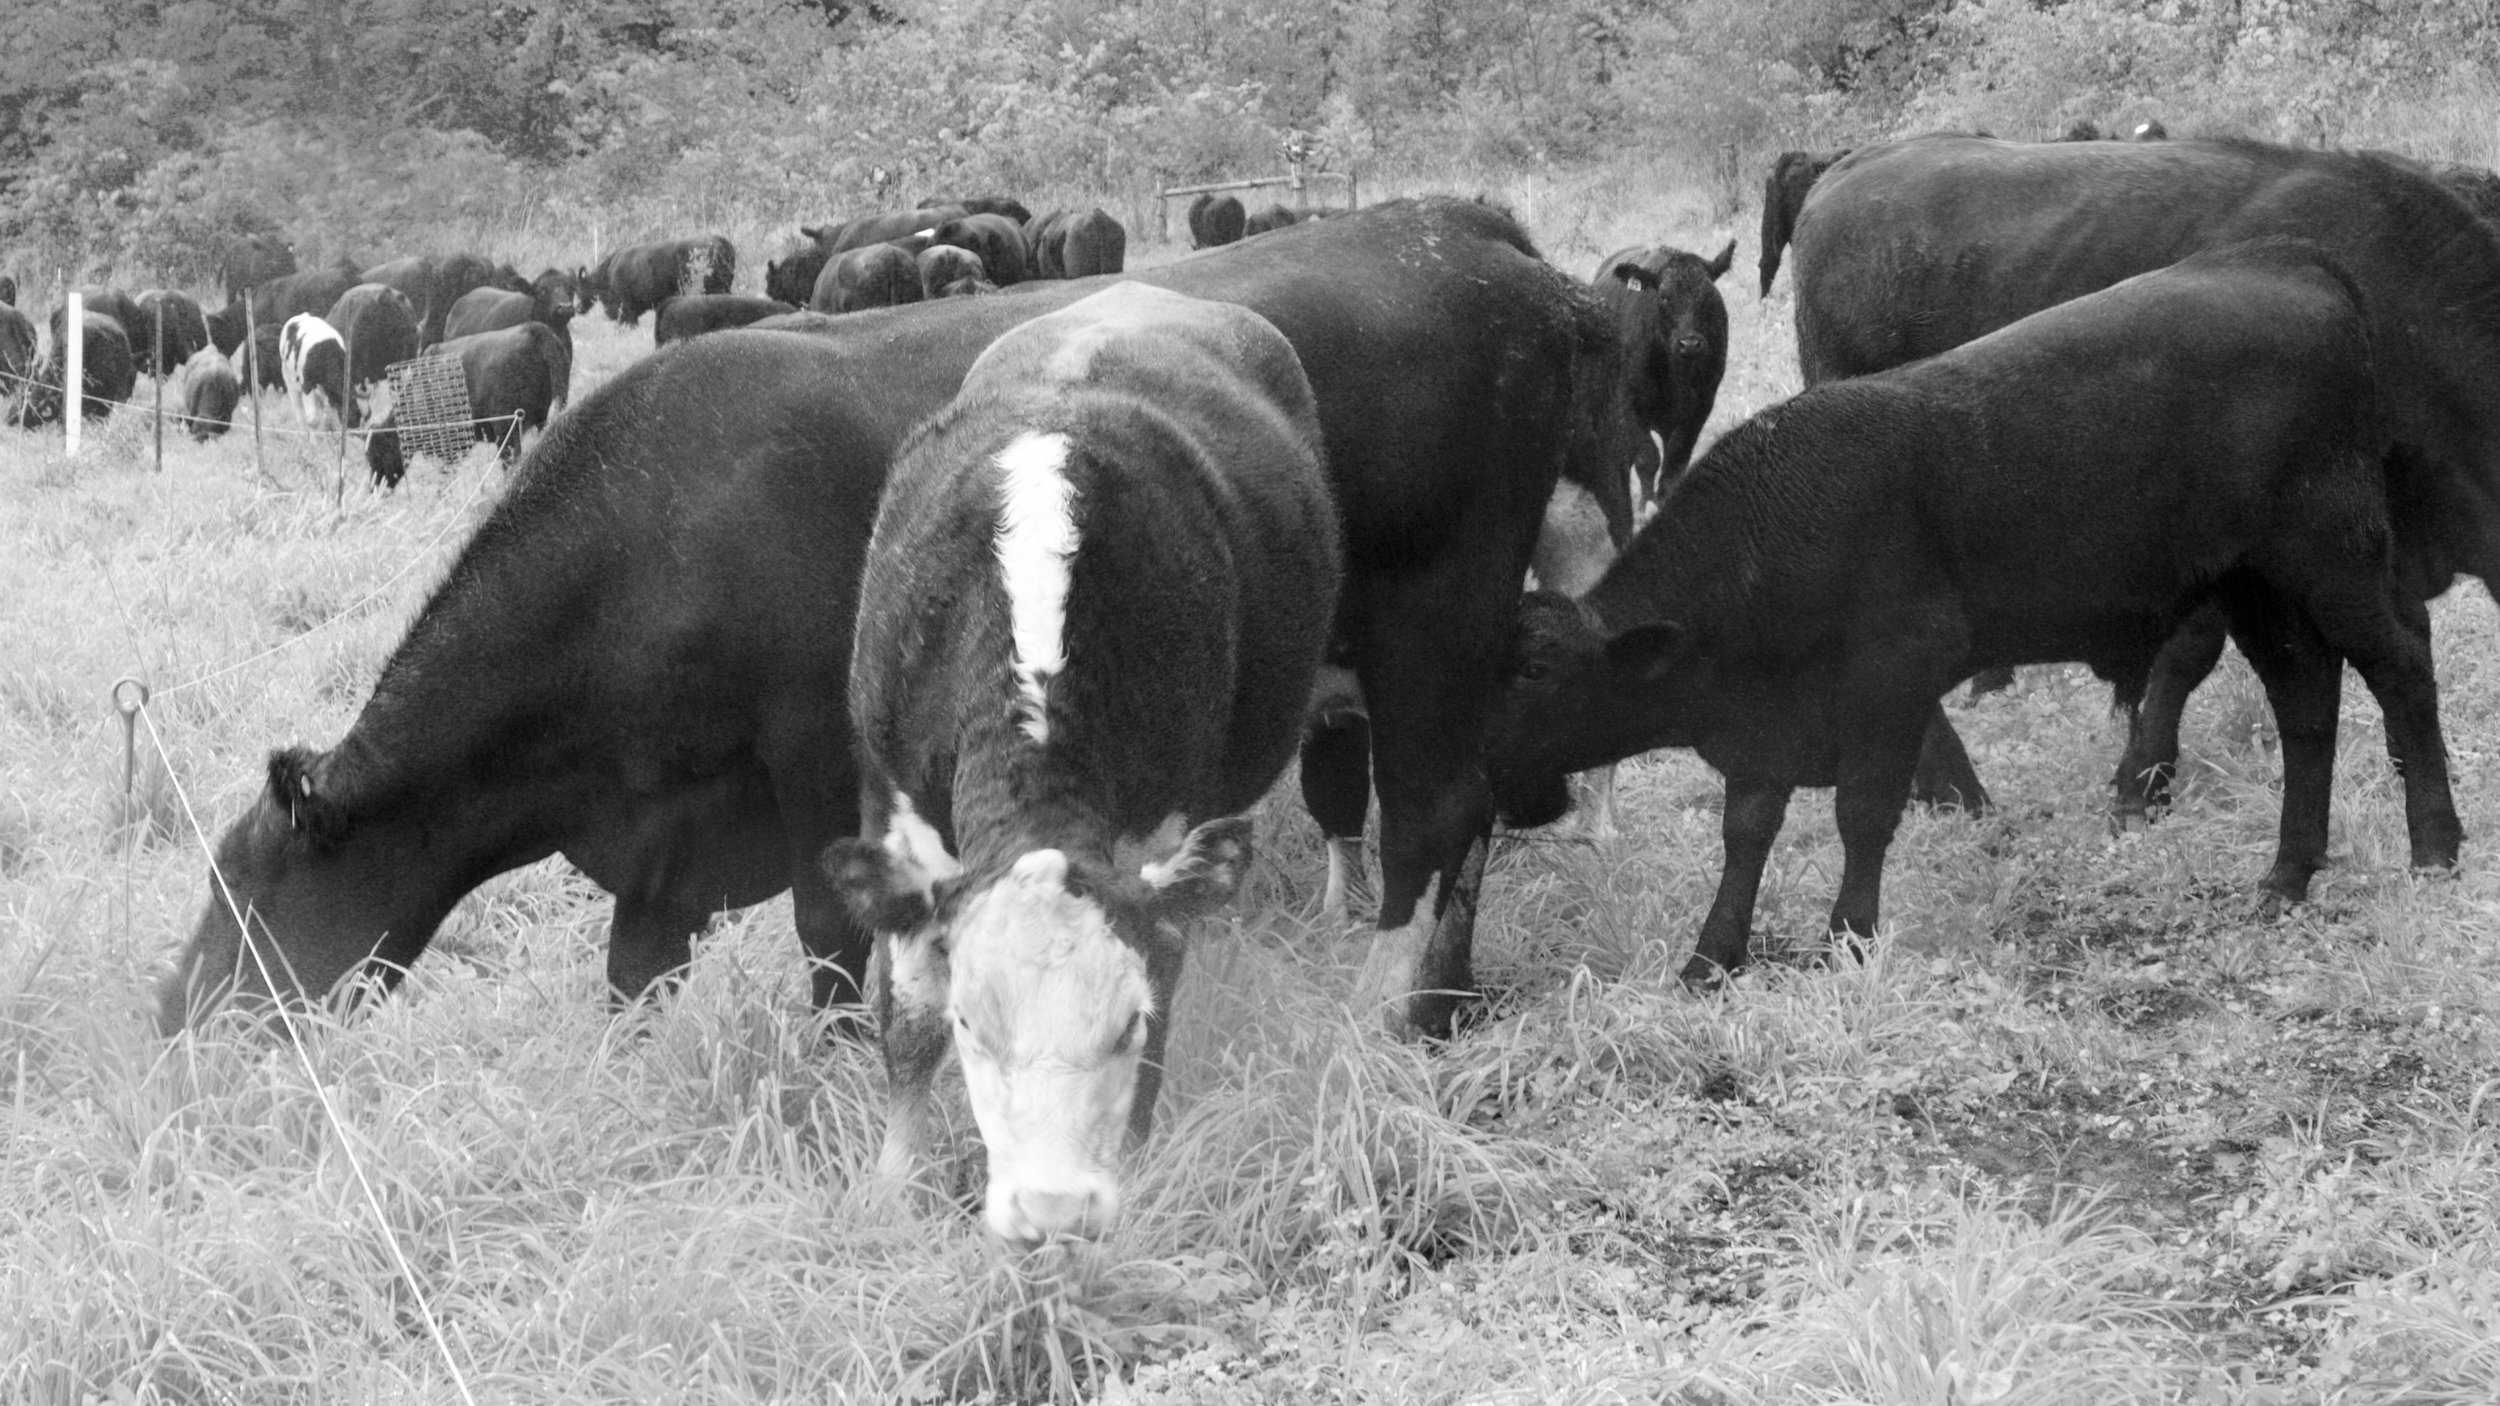 Jacob's cattle eat grass for their entire lives. They are moved to fresh pasture daily, such that they only eat the tips of the grass. The ends of the grass have the most energy, and help the cattle grow into large, healthy beasts. The slaughterhouse has a hard time believing that they are grass-finished because their fat content is on point.